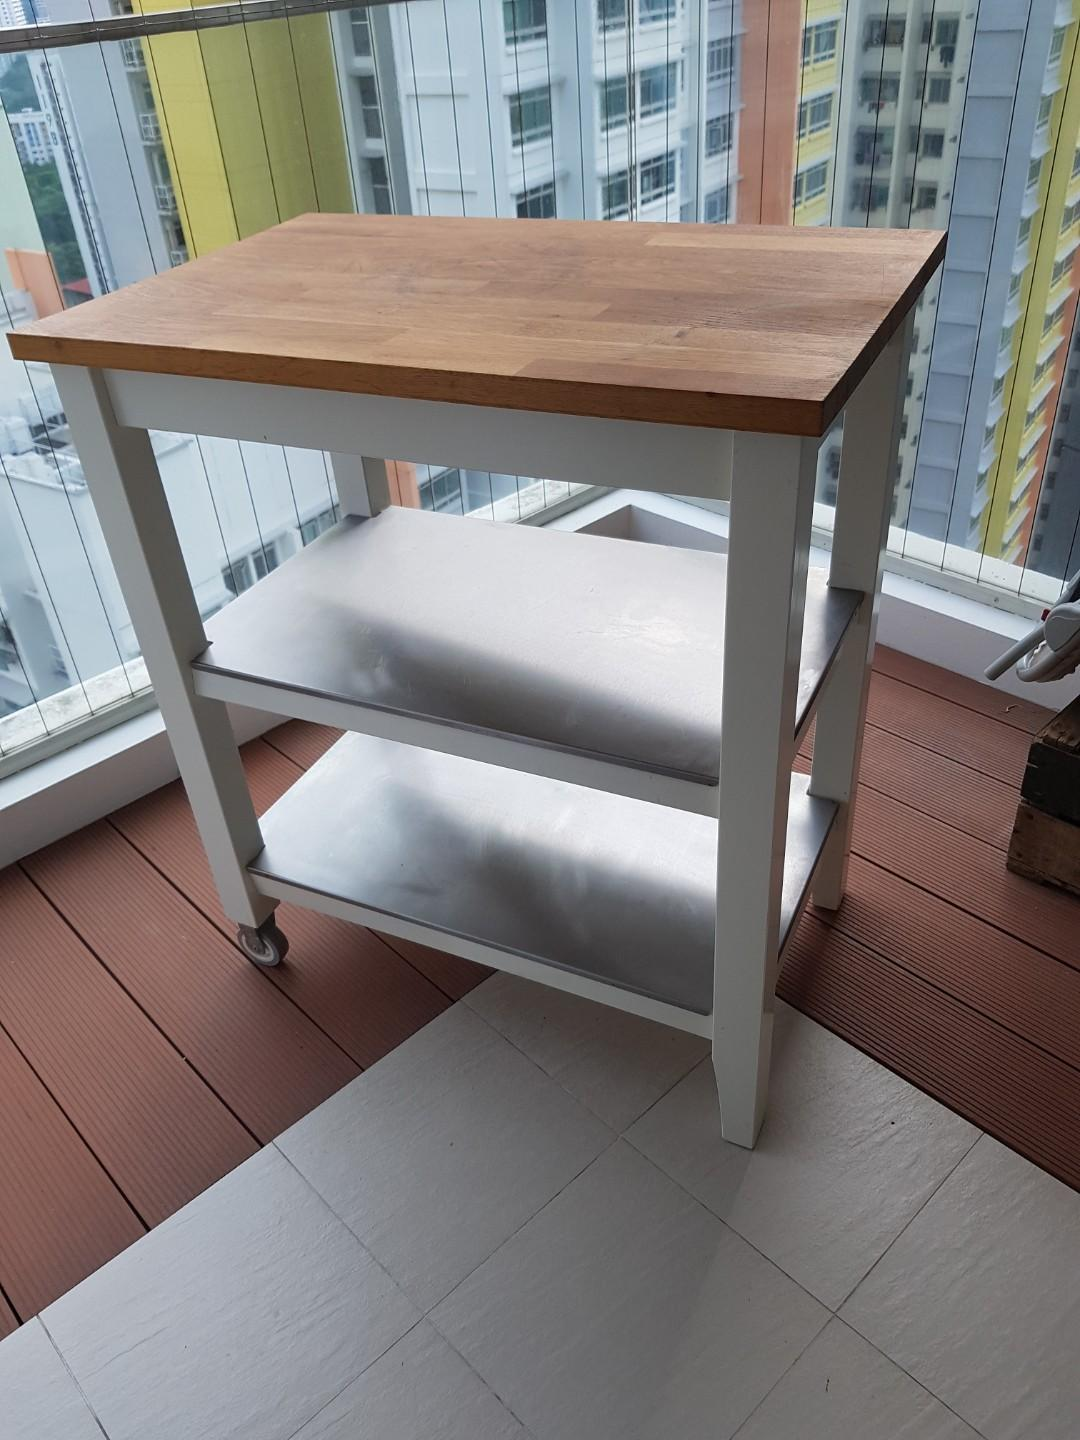 Ikea Island Bench Kitchen Trolley Furniture Home Living Furniture Shelves Cabinets Racks On Carousell